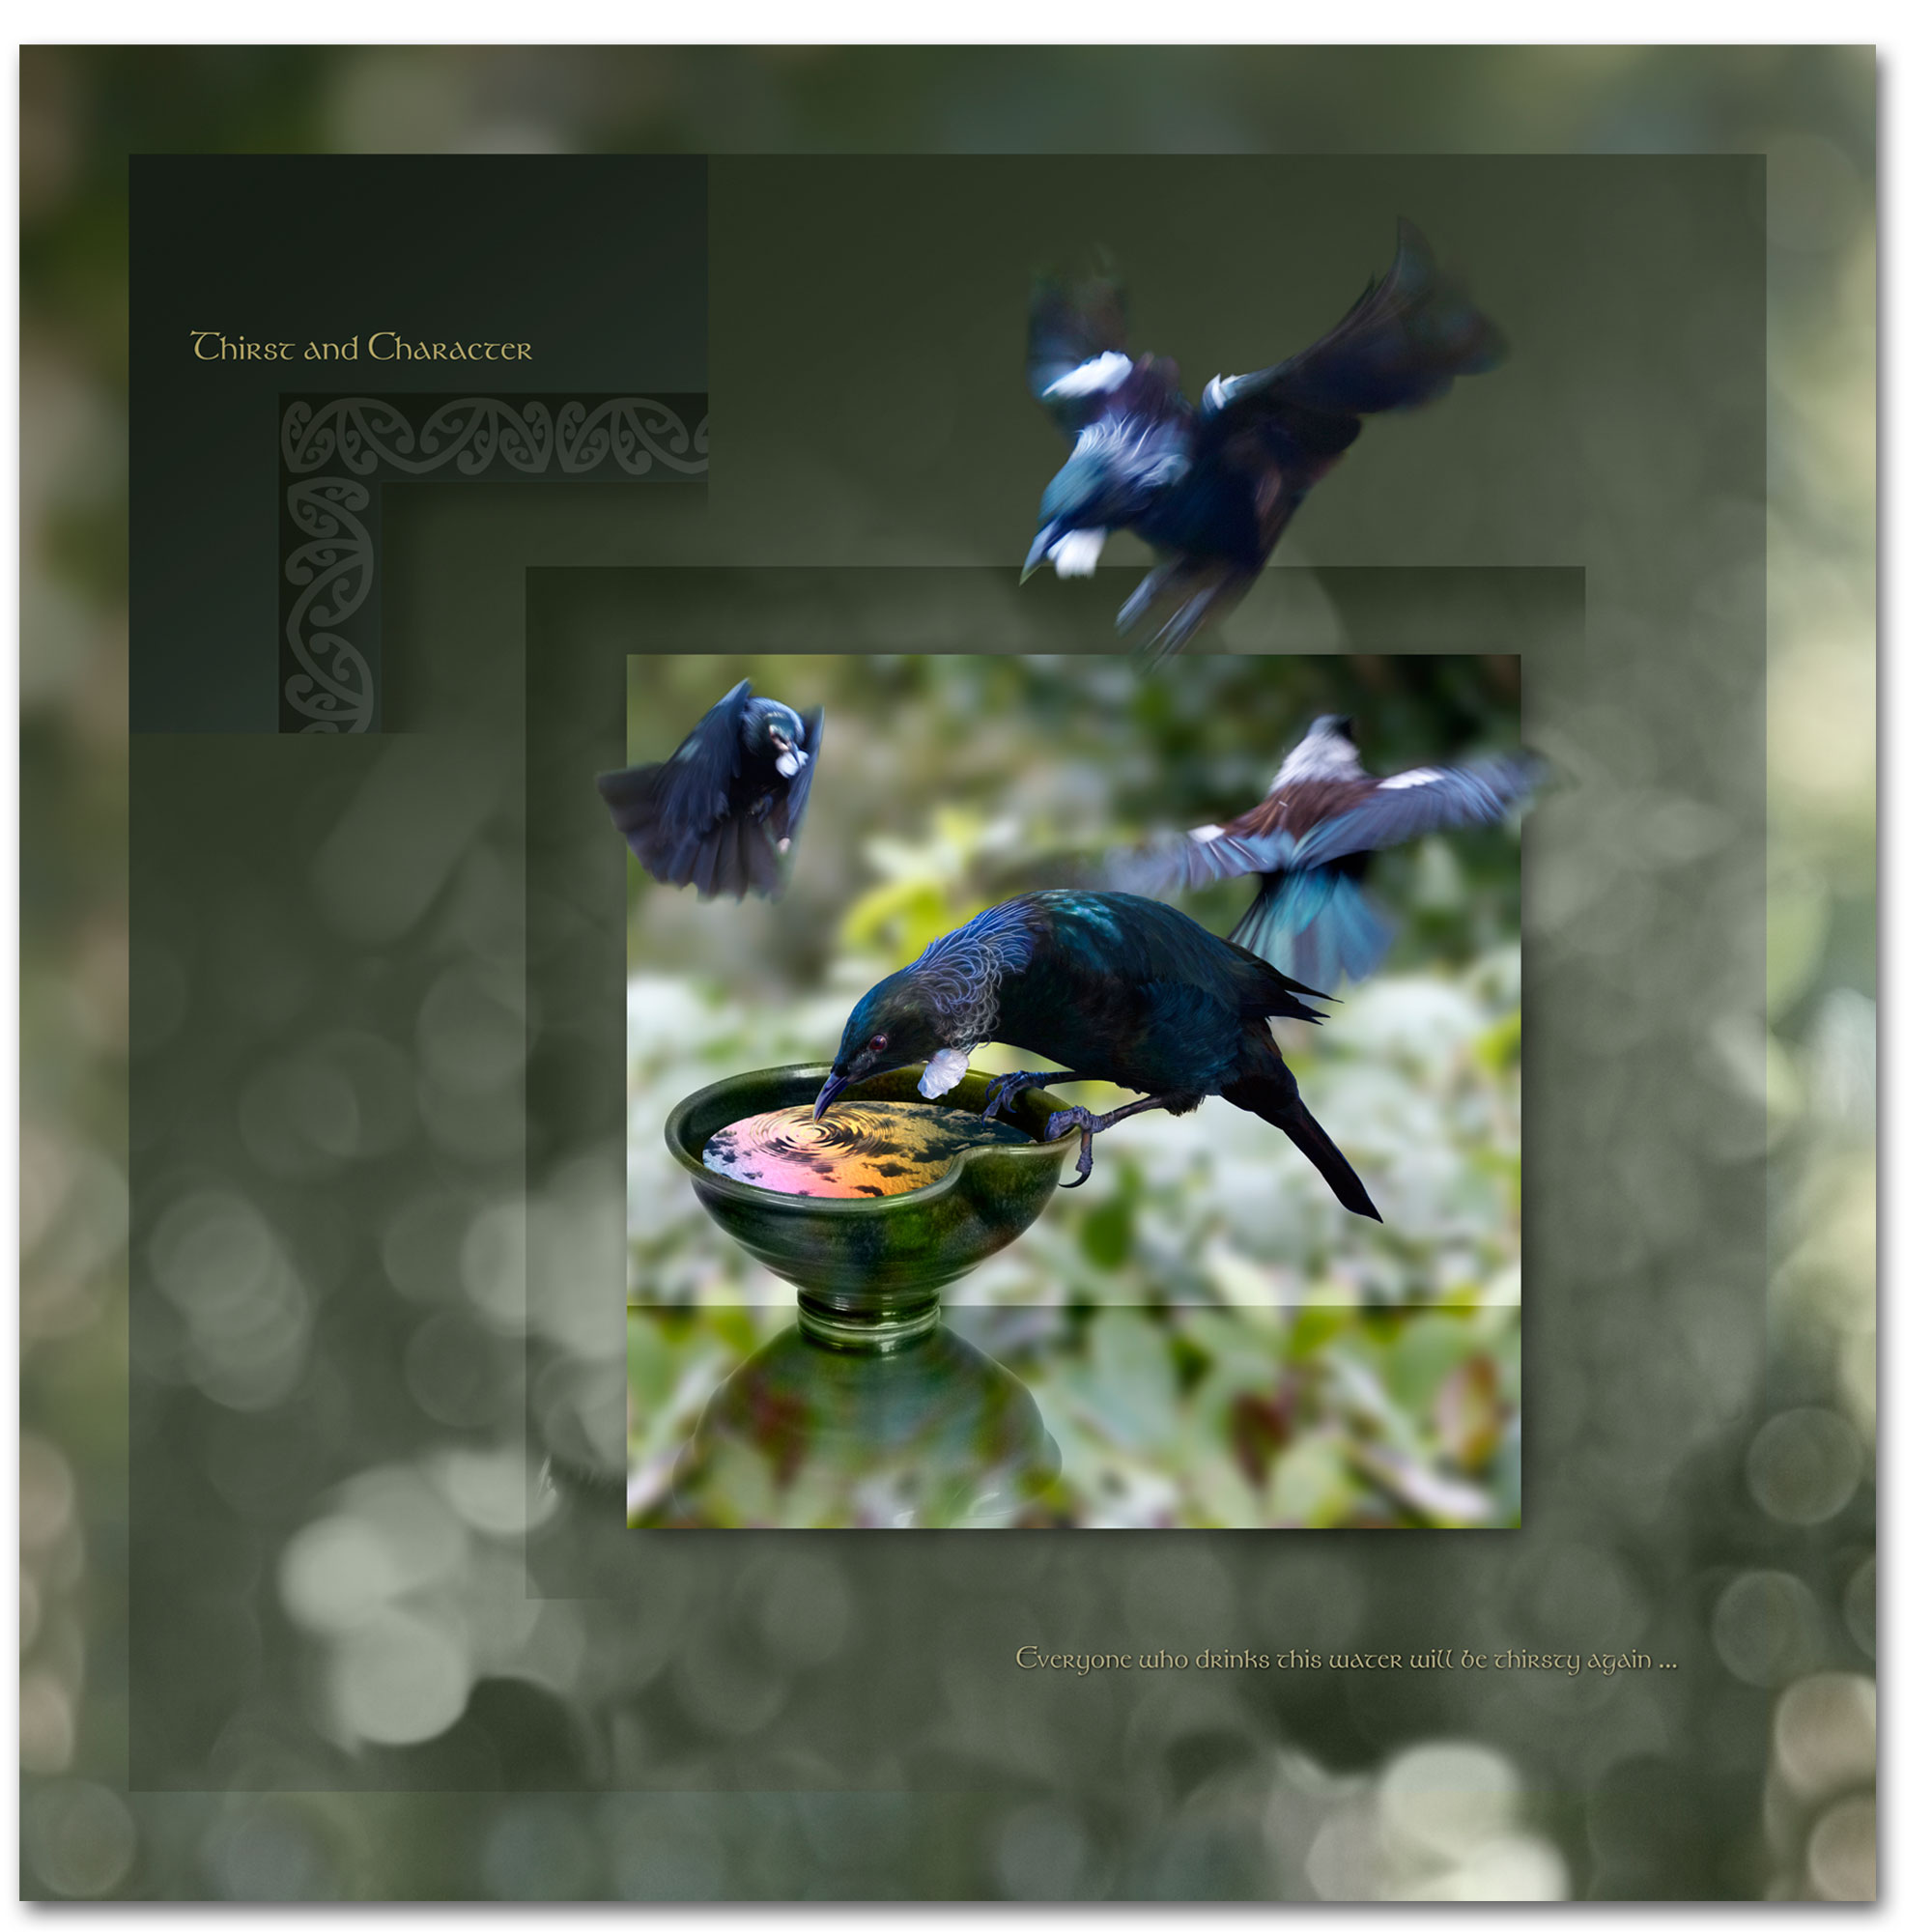 Tui in flight and finding food. An artificial sugared water replacing nectar.